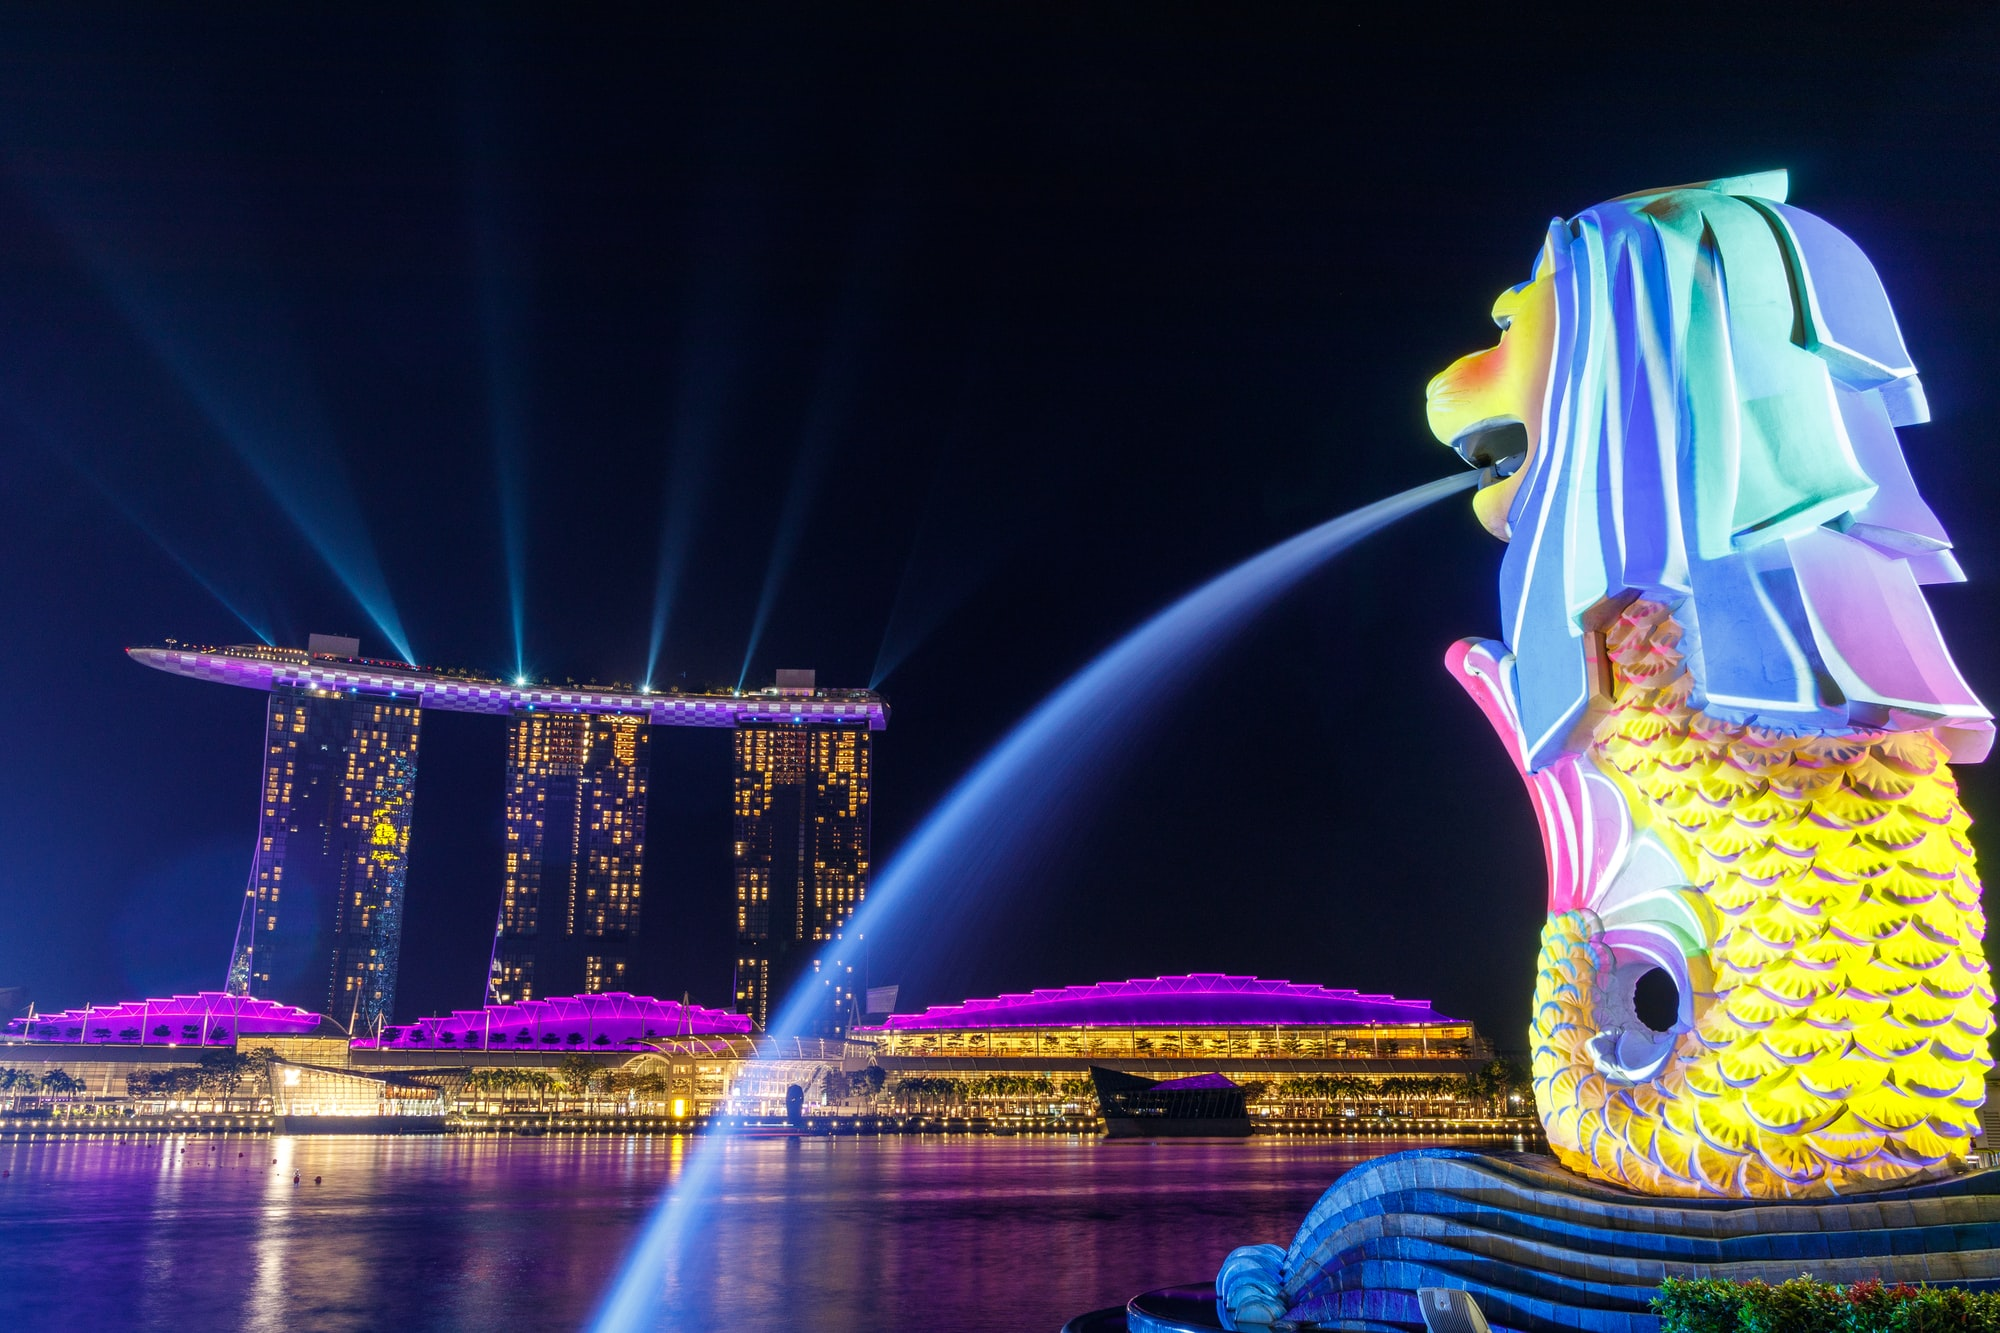 Lights shone on the Merlion as it overlooks Singapore's iconic Marina Bay Sands. During the Formula 1 Grand Prix night race, lights were projected onto the Merlion and the 'boat' of Marina Bay Sands.